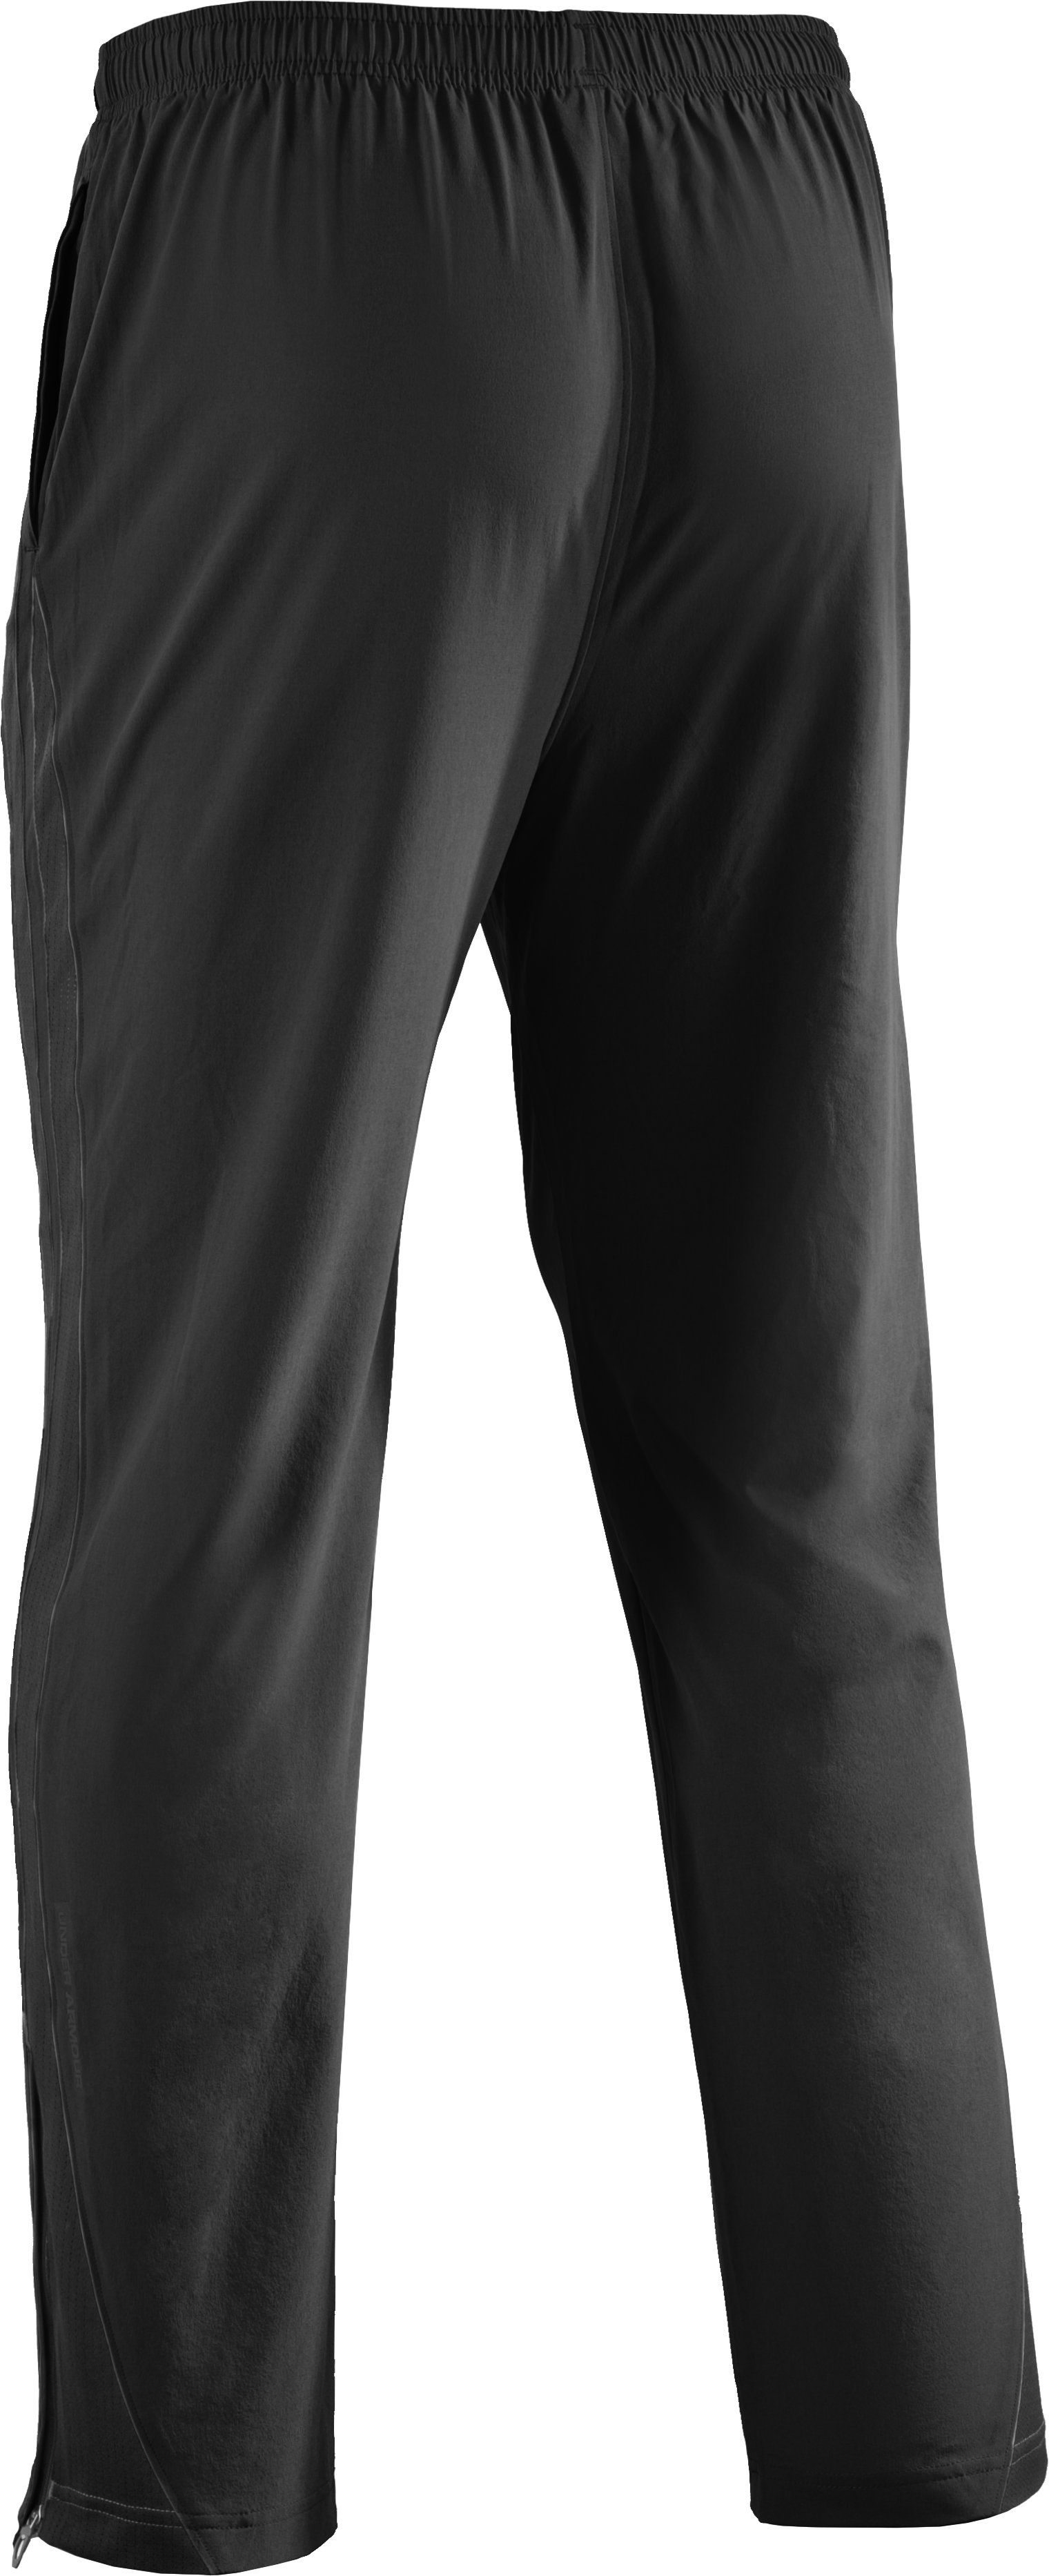 Men's Transit Woven Pants, Black , undefined